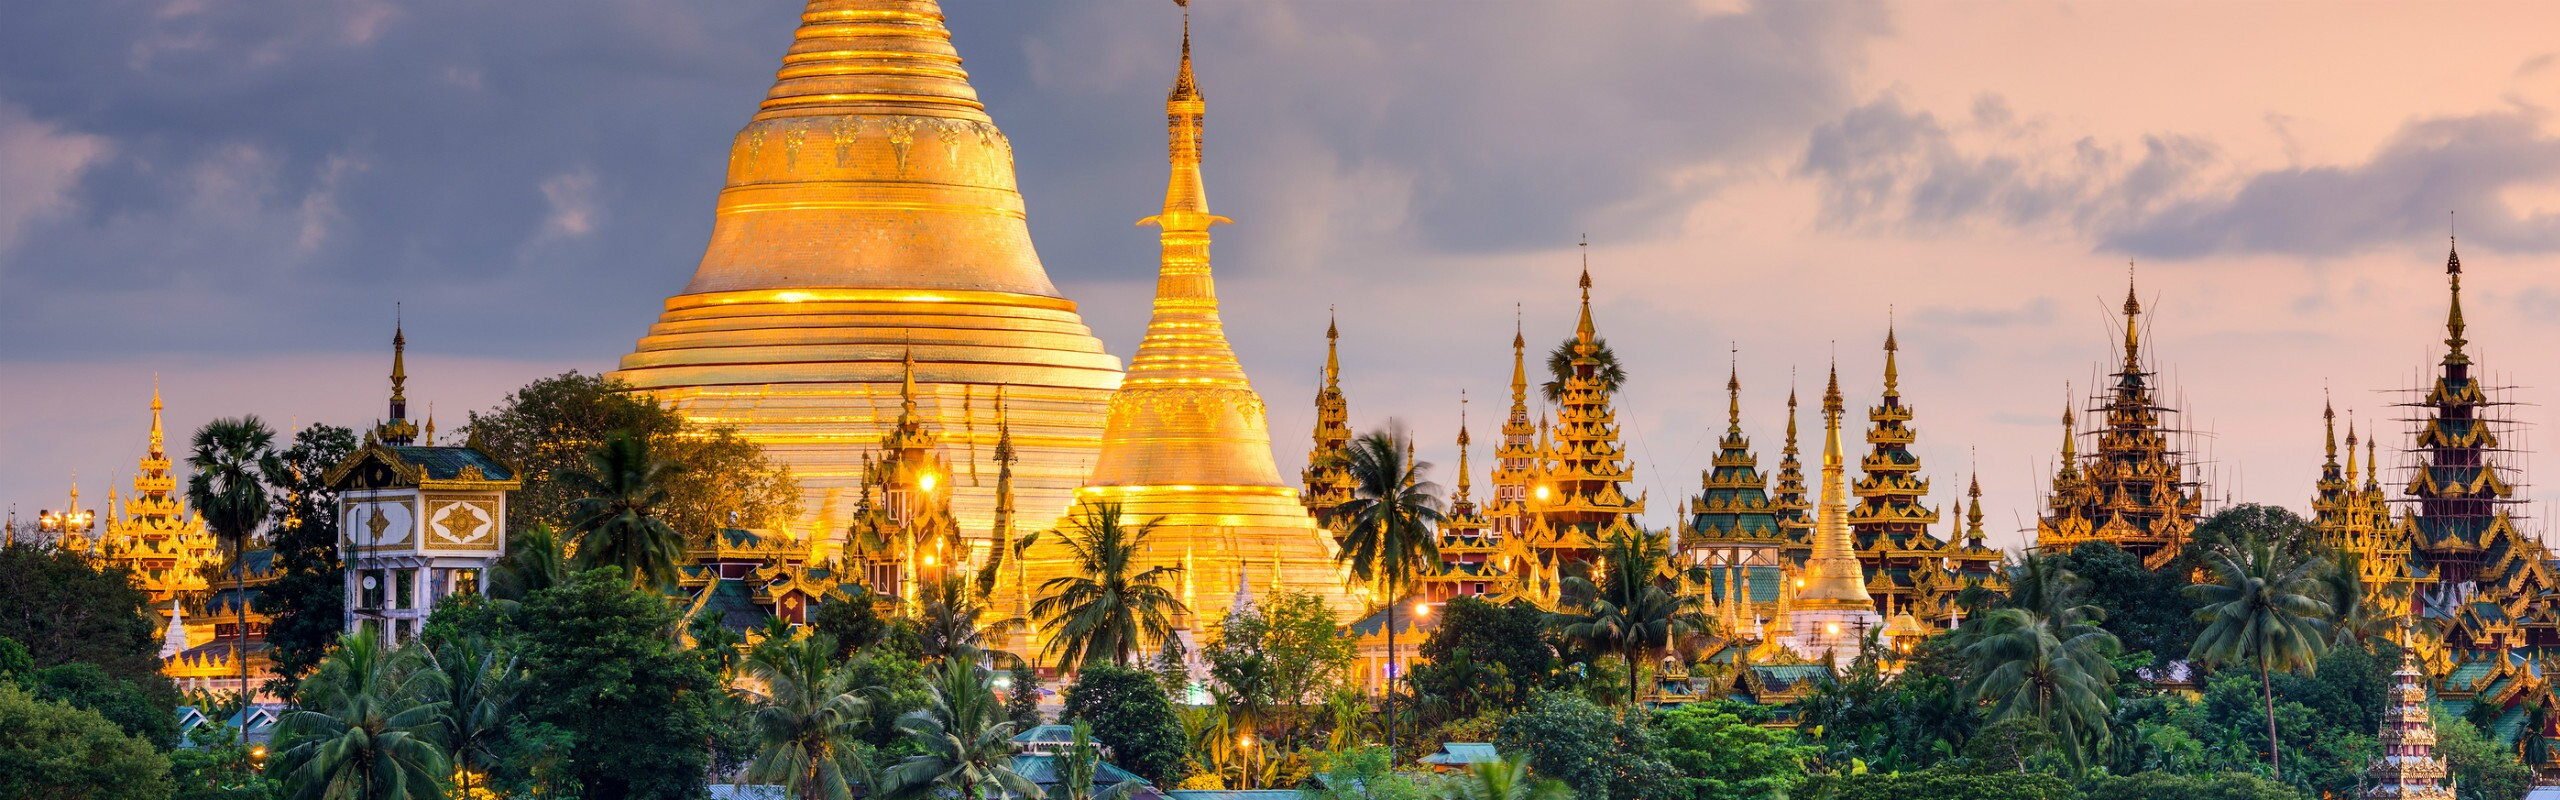 How to Plan a Trip to Myanmar - Local Guide